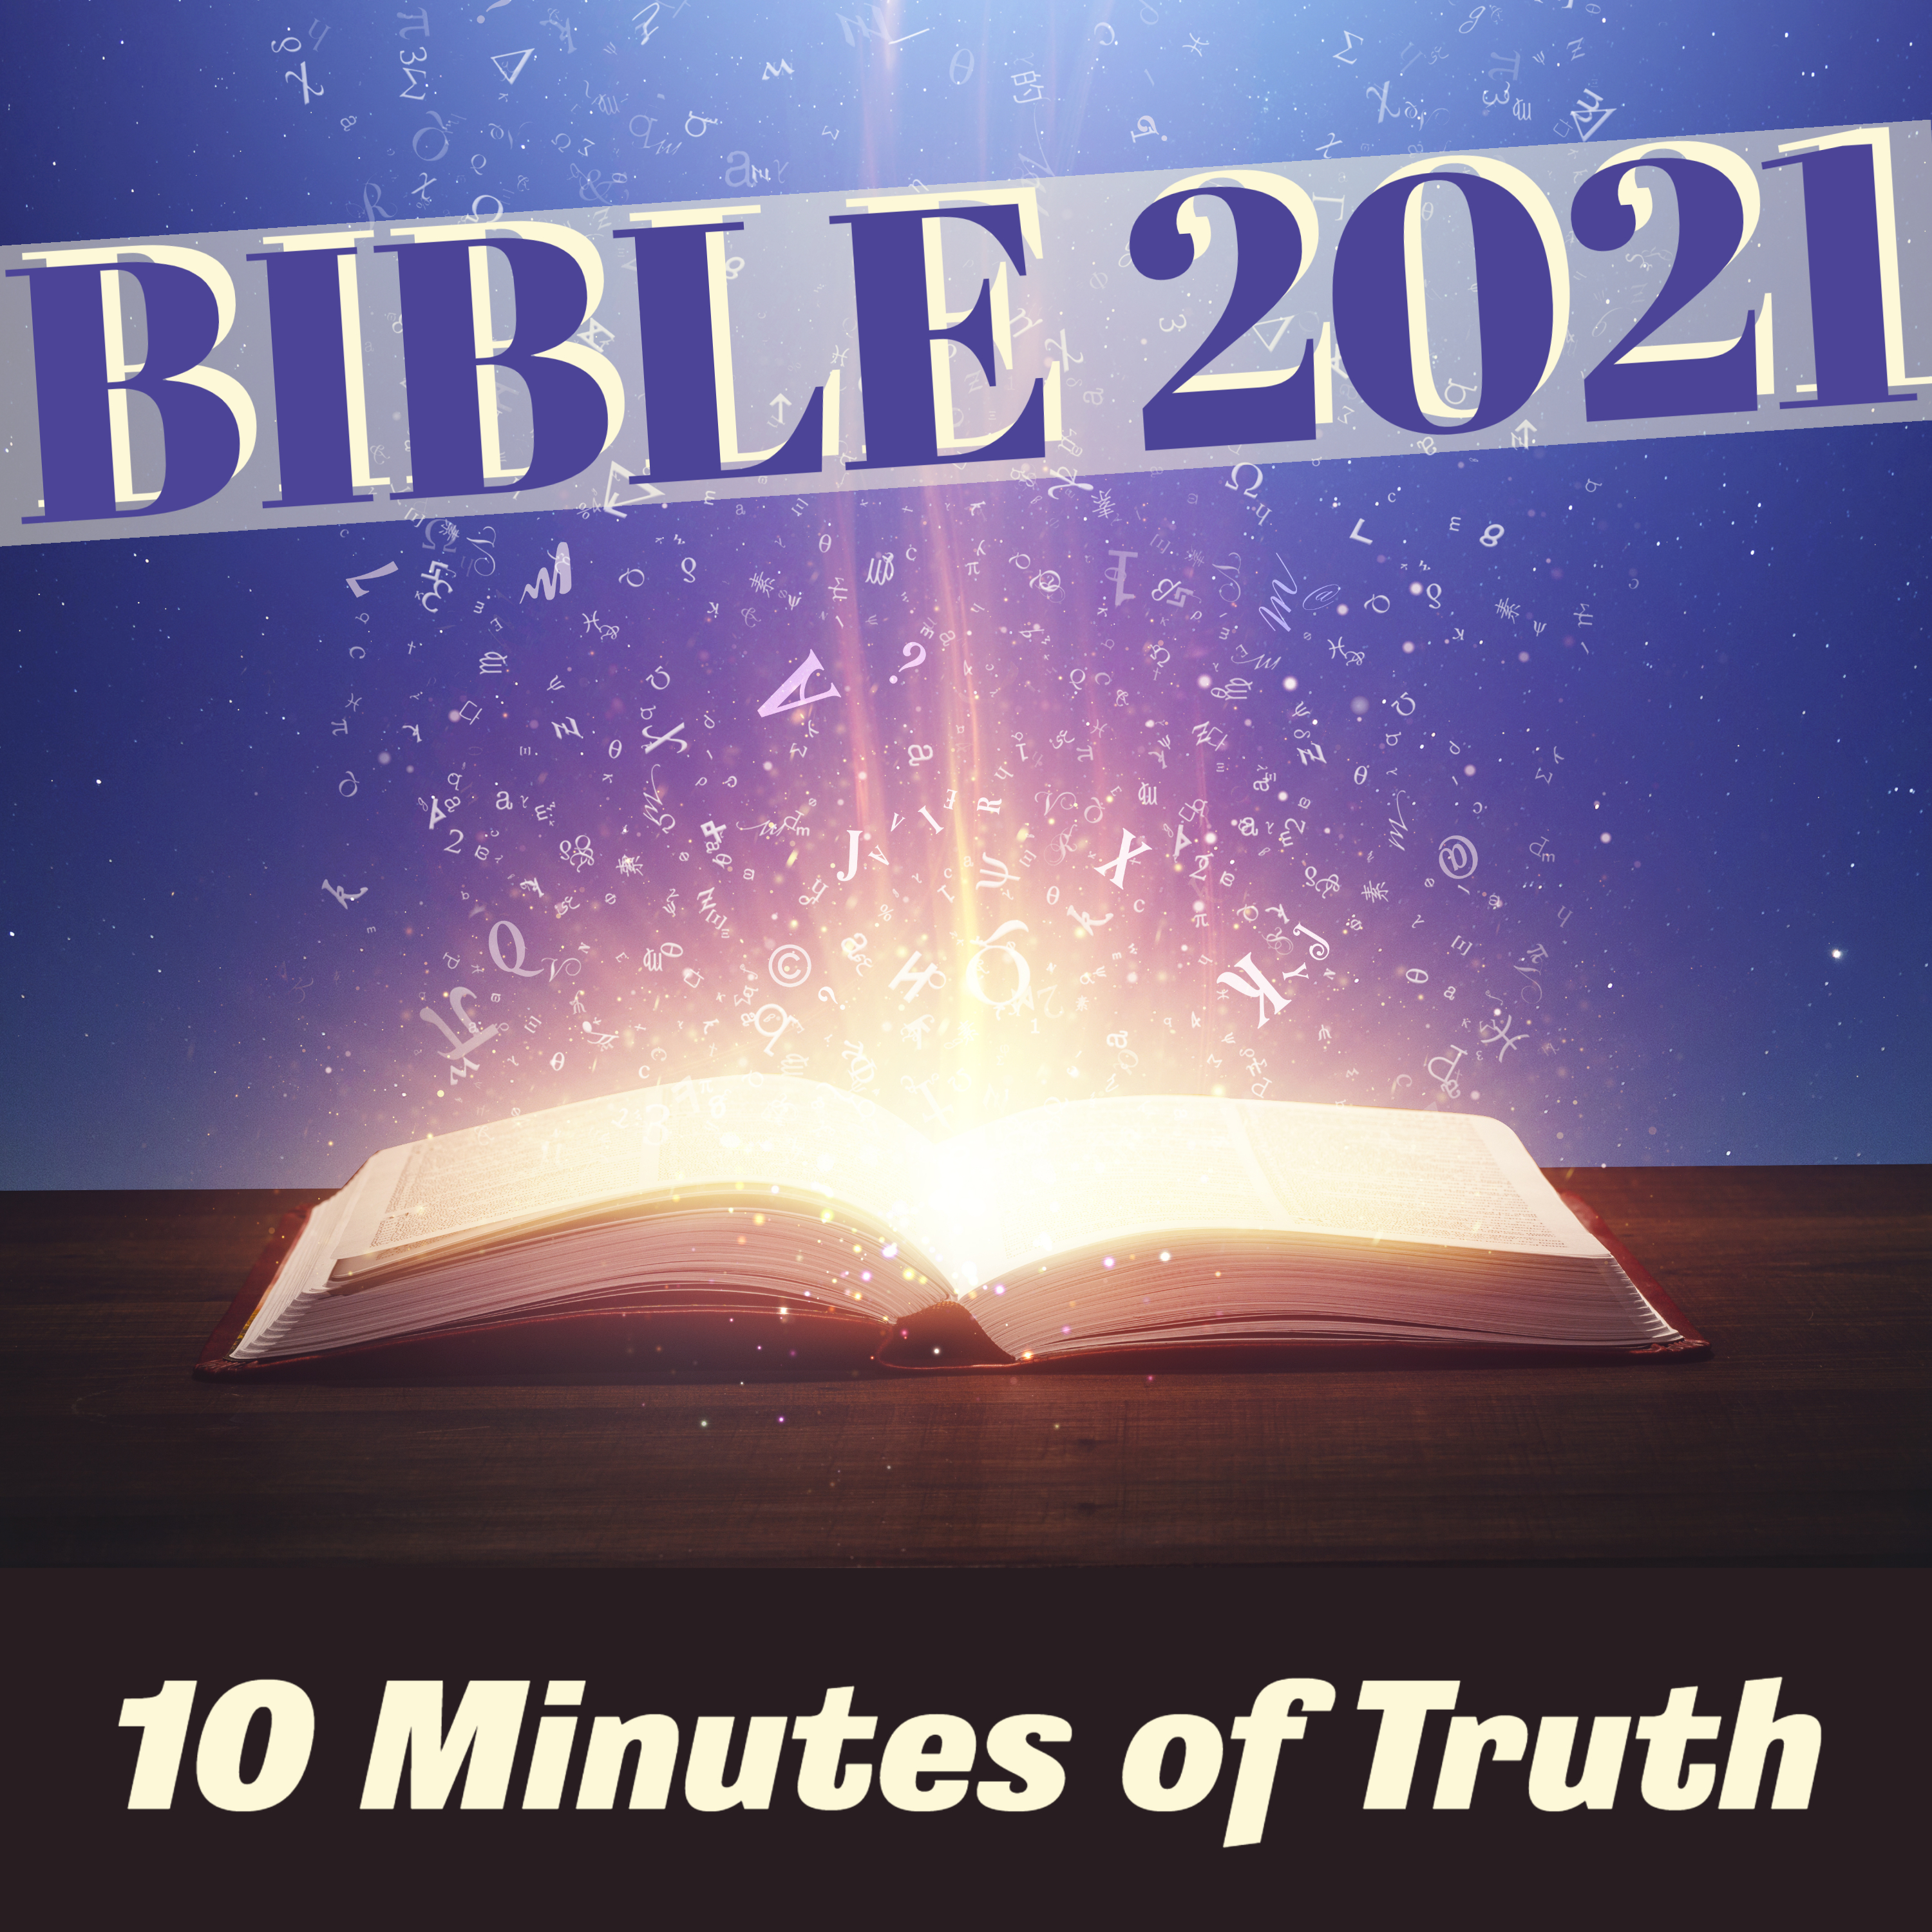 Bible 2021: 10 Minutes of Truth show art